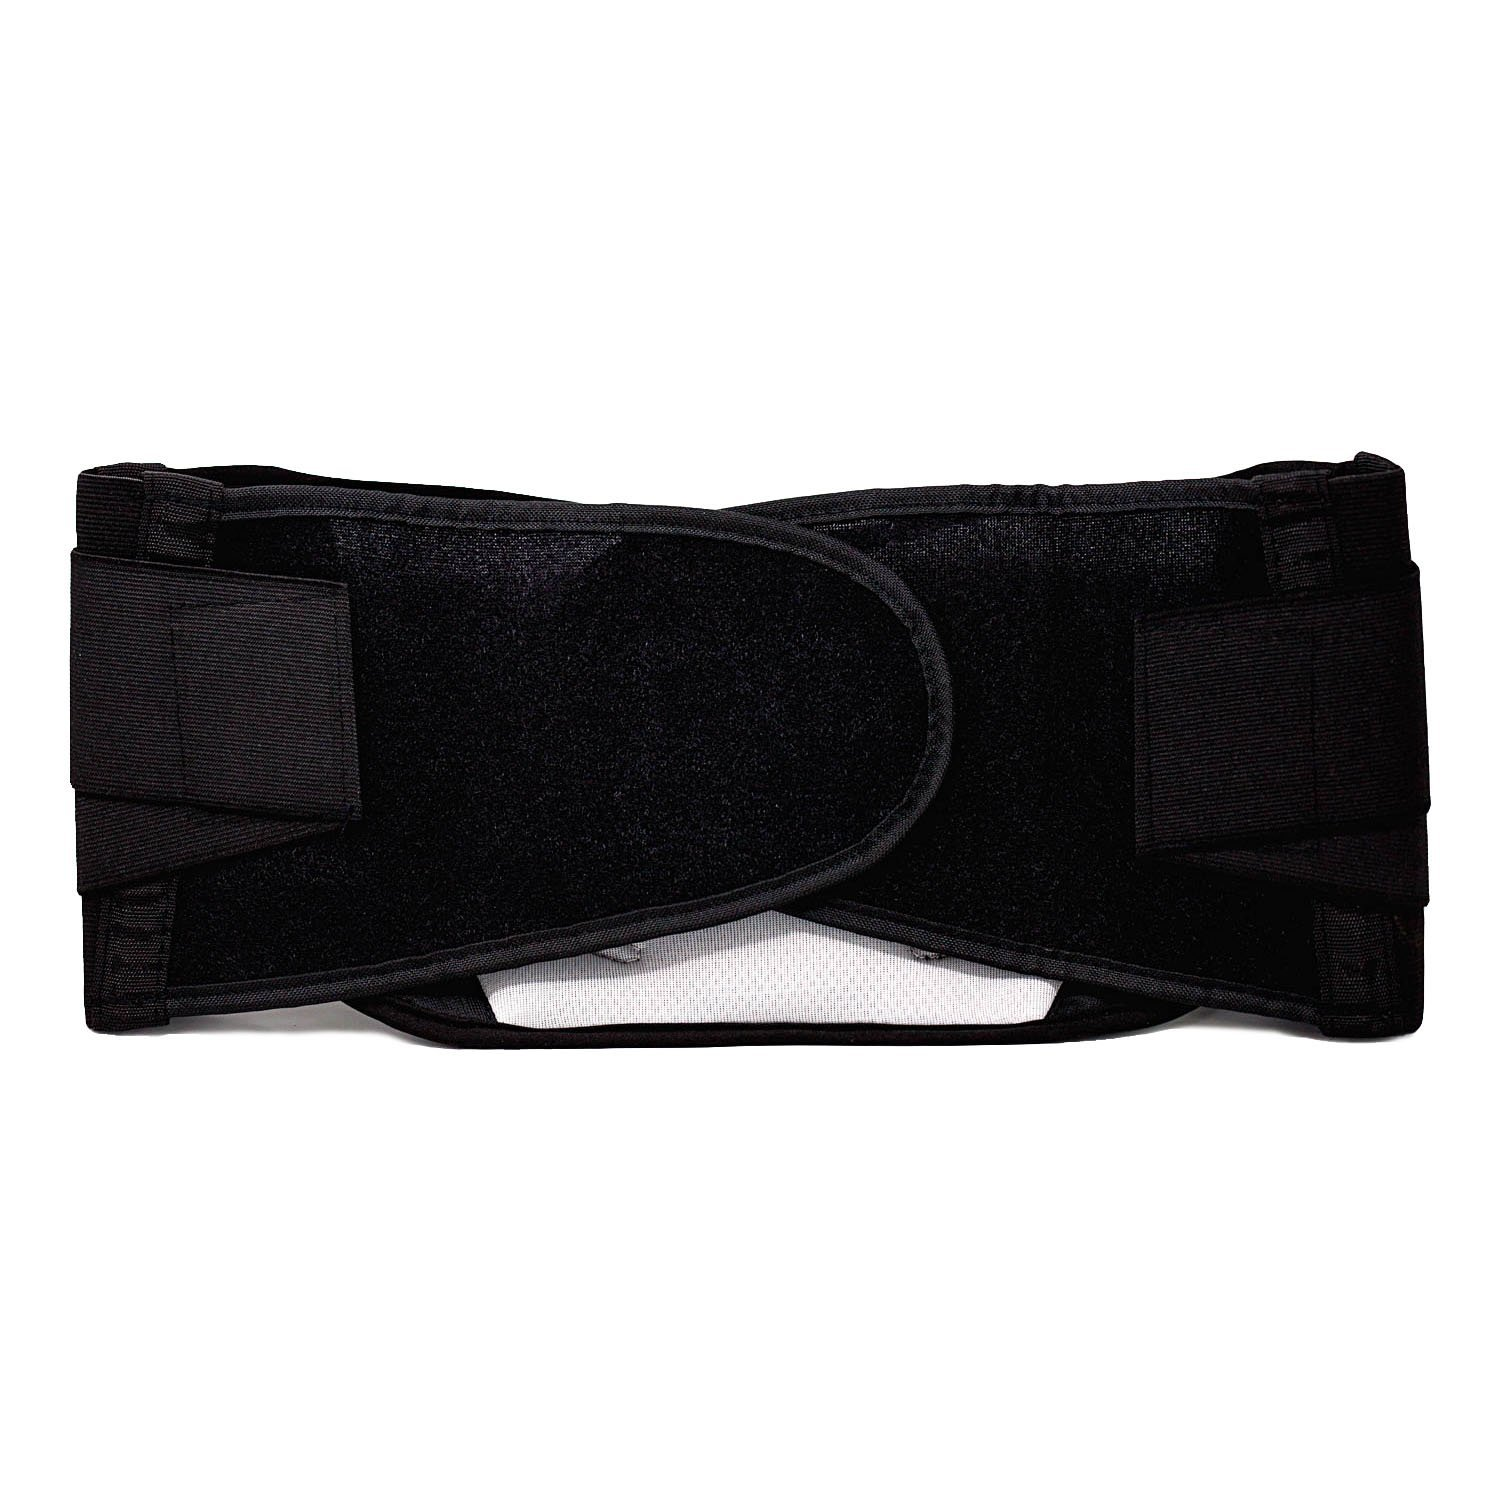 SAFE HANDLER Advanced Honeycomb Technology Back Brace Stable Support Belt with Breathable Mesh Panels Lower Back Brace Protects /& Relieves Back Pain L//XL